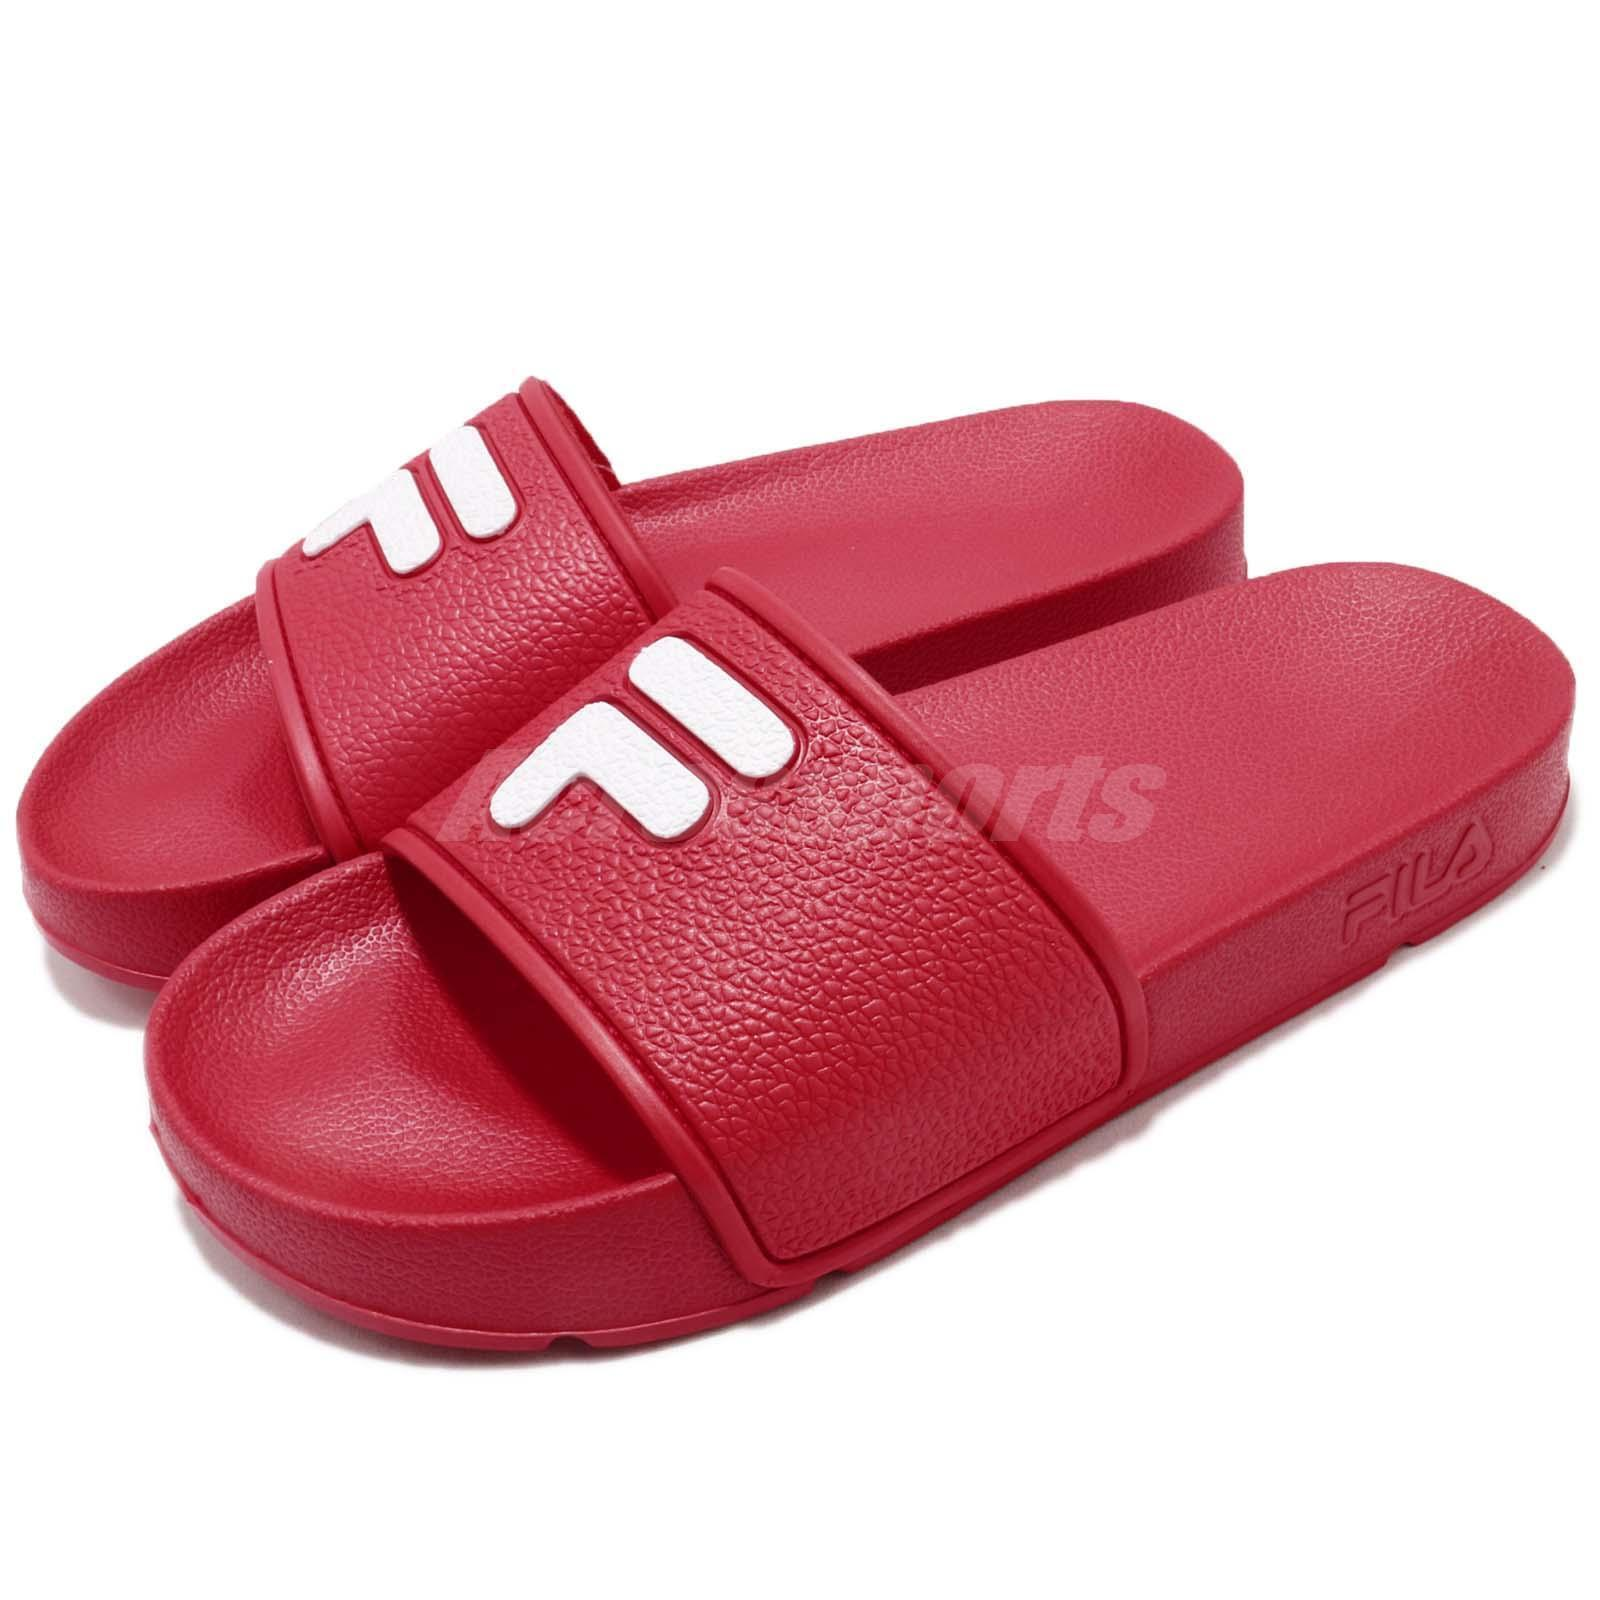 Gentleman/Lady Fila S316S Logo Red White Sandals Rubber Men Women Sports Sandals White Slides Slippers elegant Fast delivery Excellent function WG466 a20814